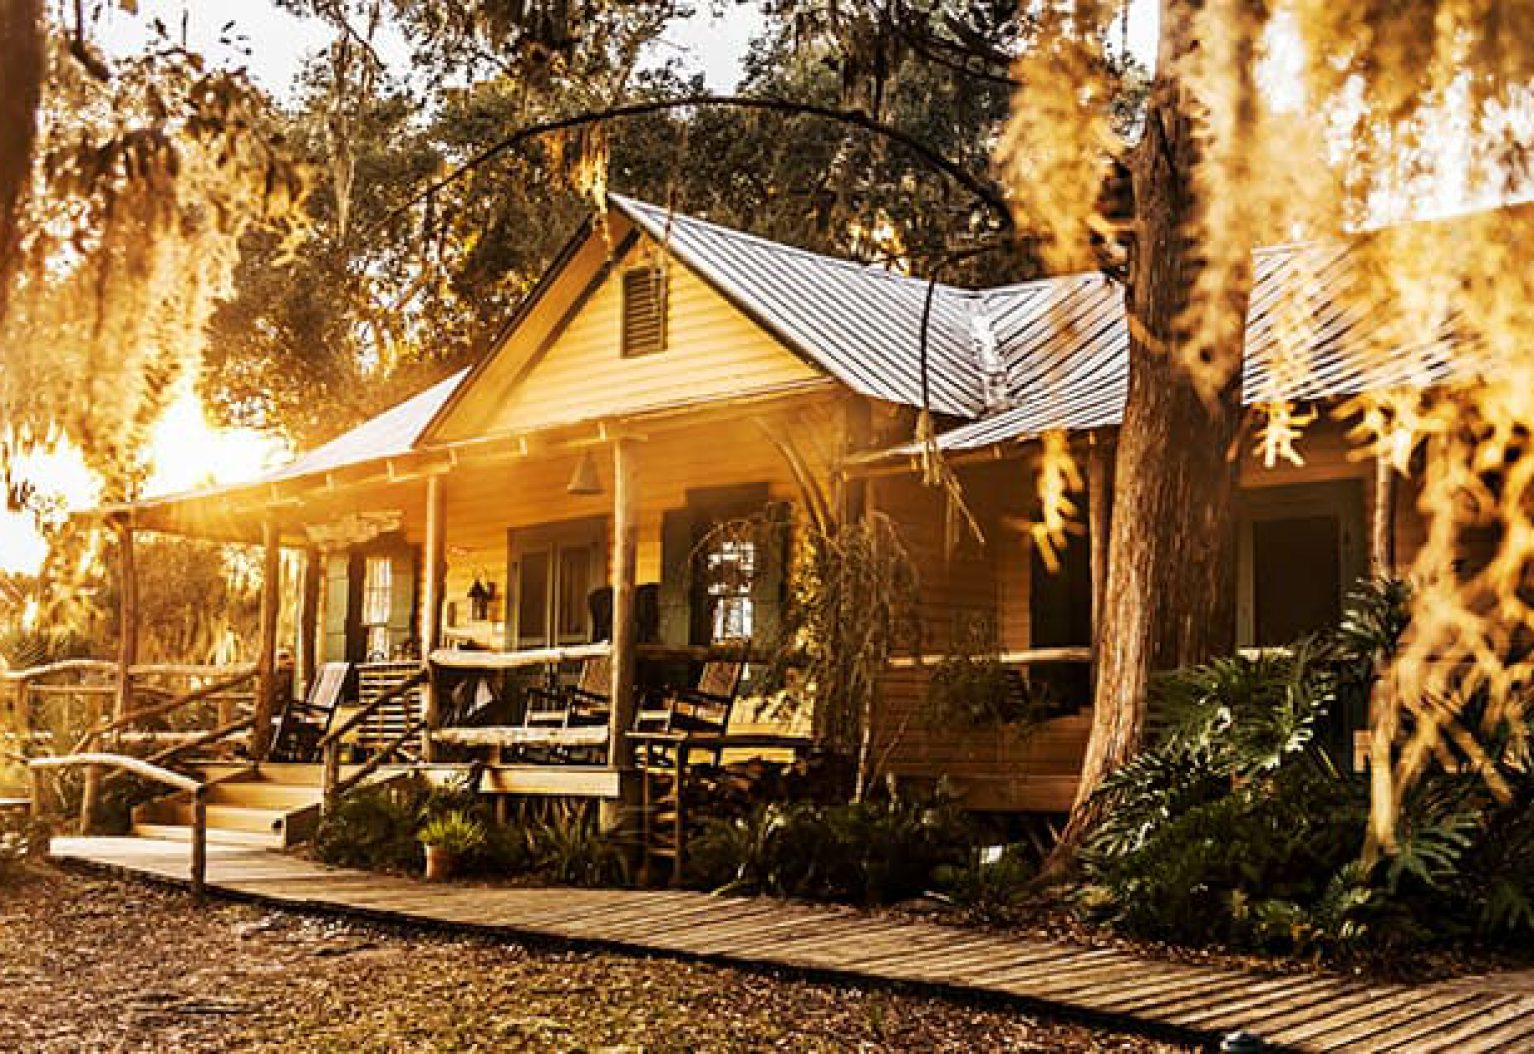 The lodge at Little St Simons Island in Georgias Golden Isles